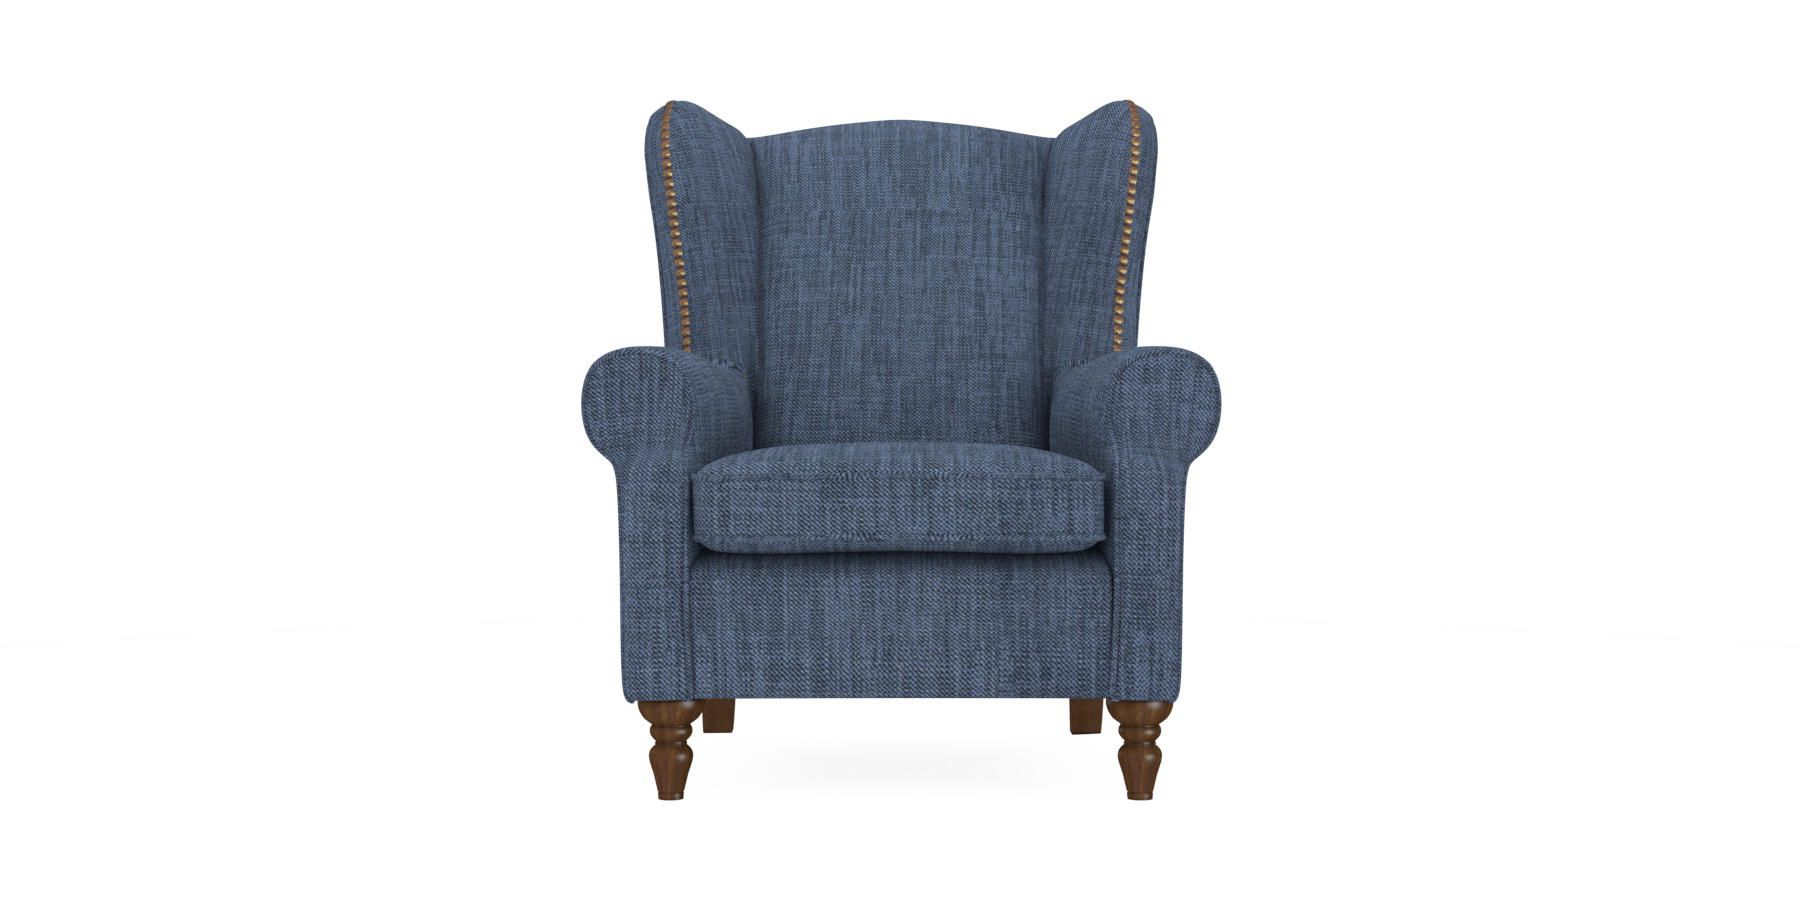 Buy Sherlock With Studs Chair (1 Seat) Belgian Soft Twill Navy High Turned - Standard from the Next UK online shop